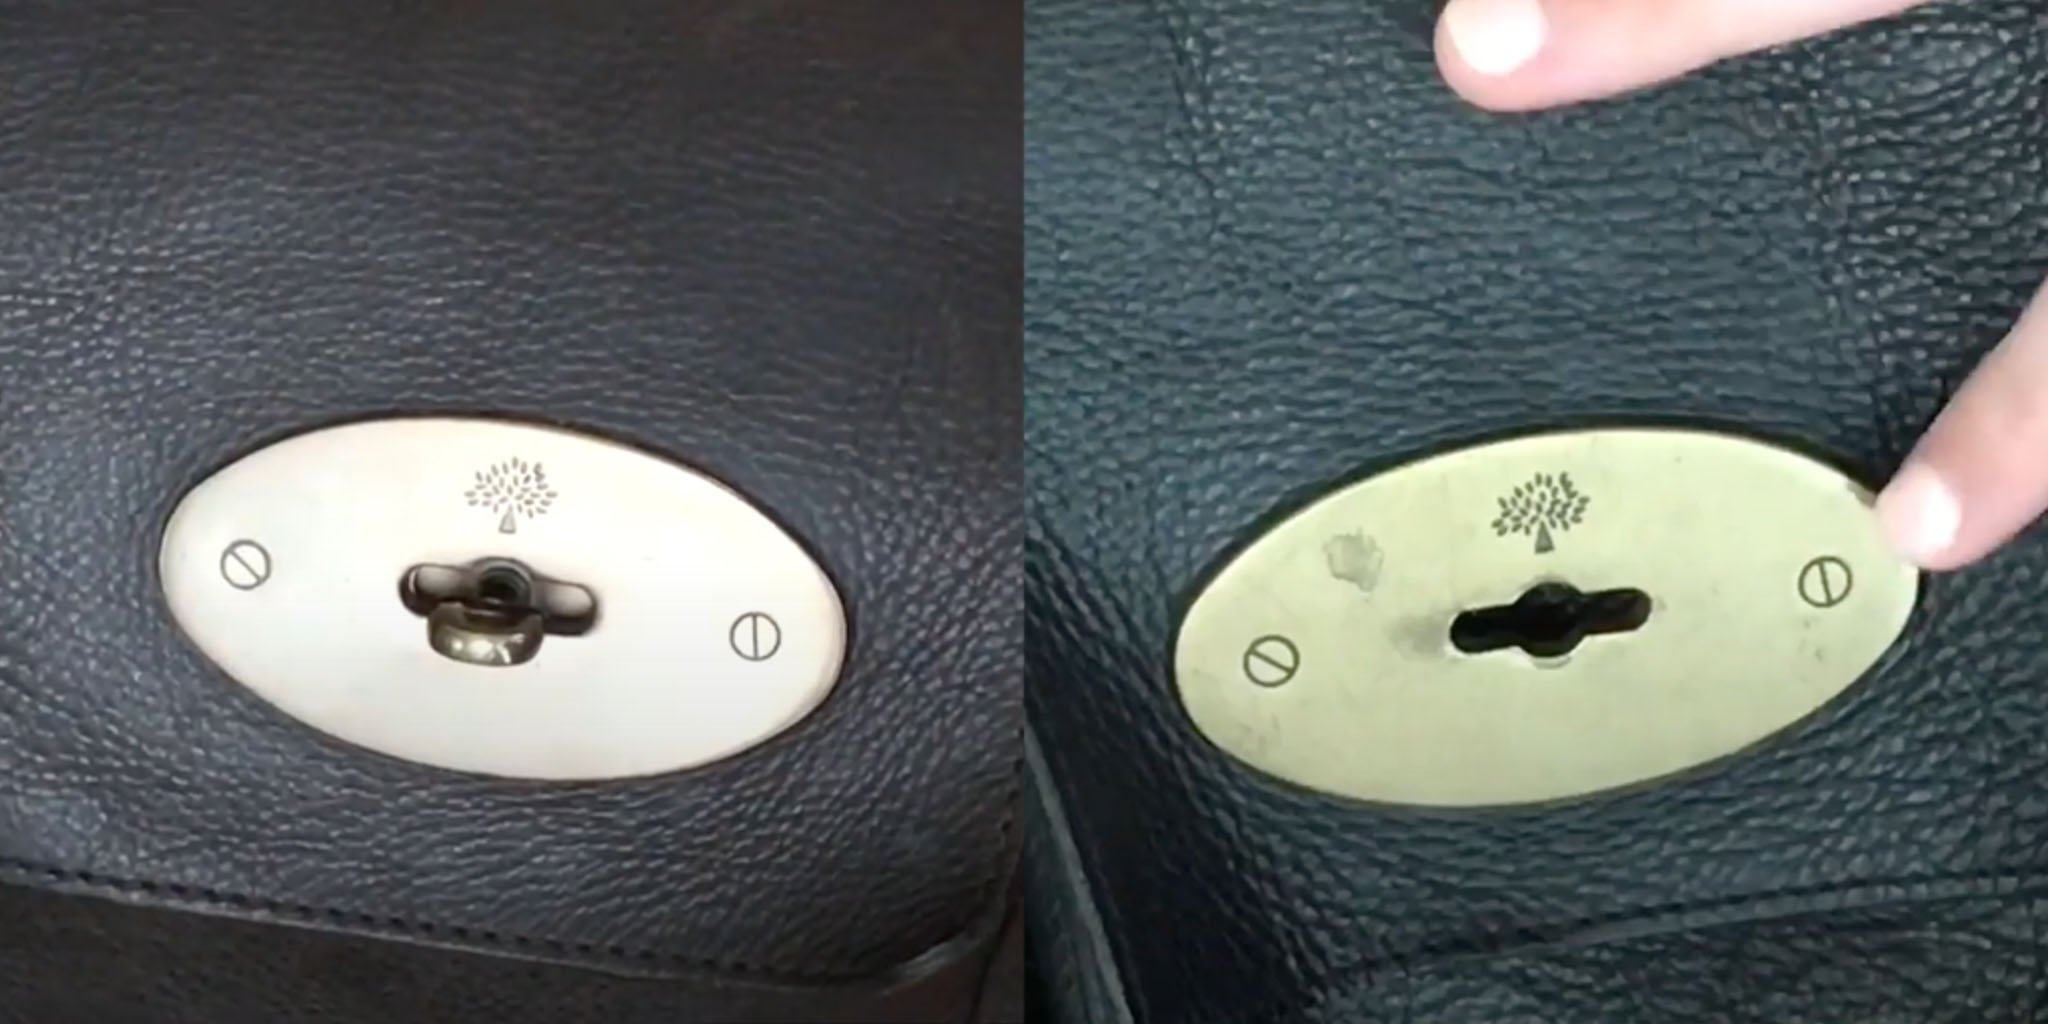 The original Mulberry bag (left) has a faded gold-tone hardware, while the fake one has yellow gold-tone hardware (right)